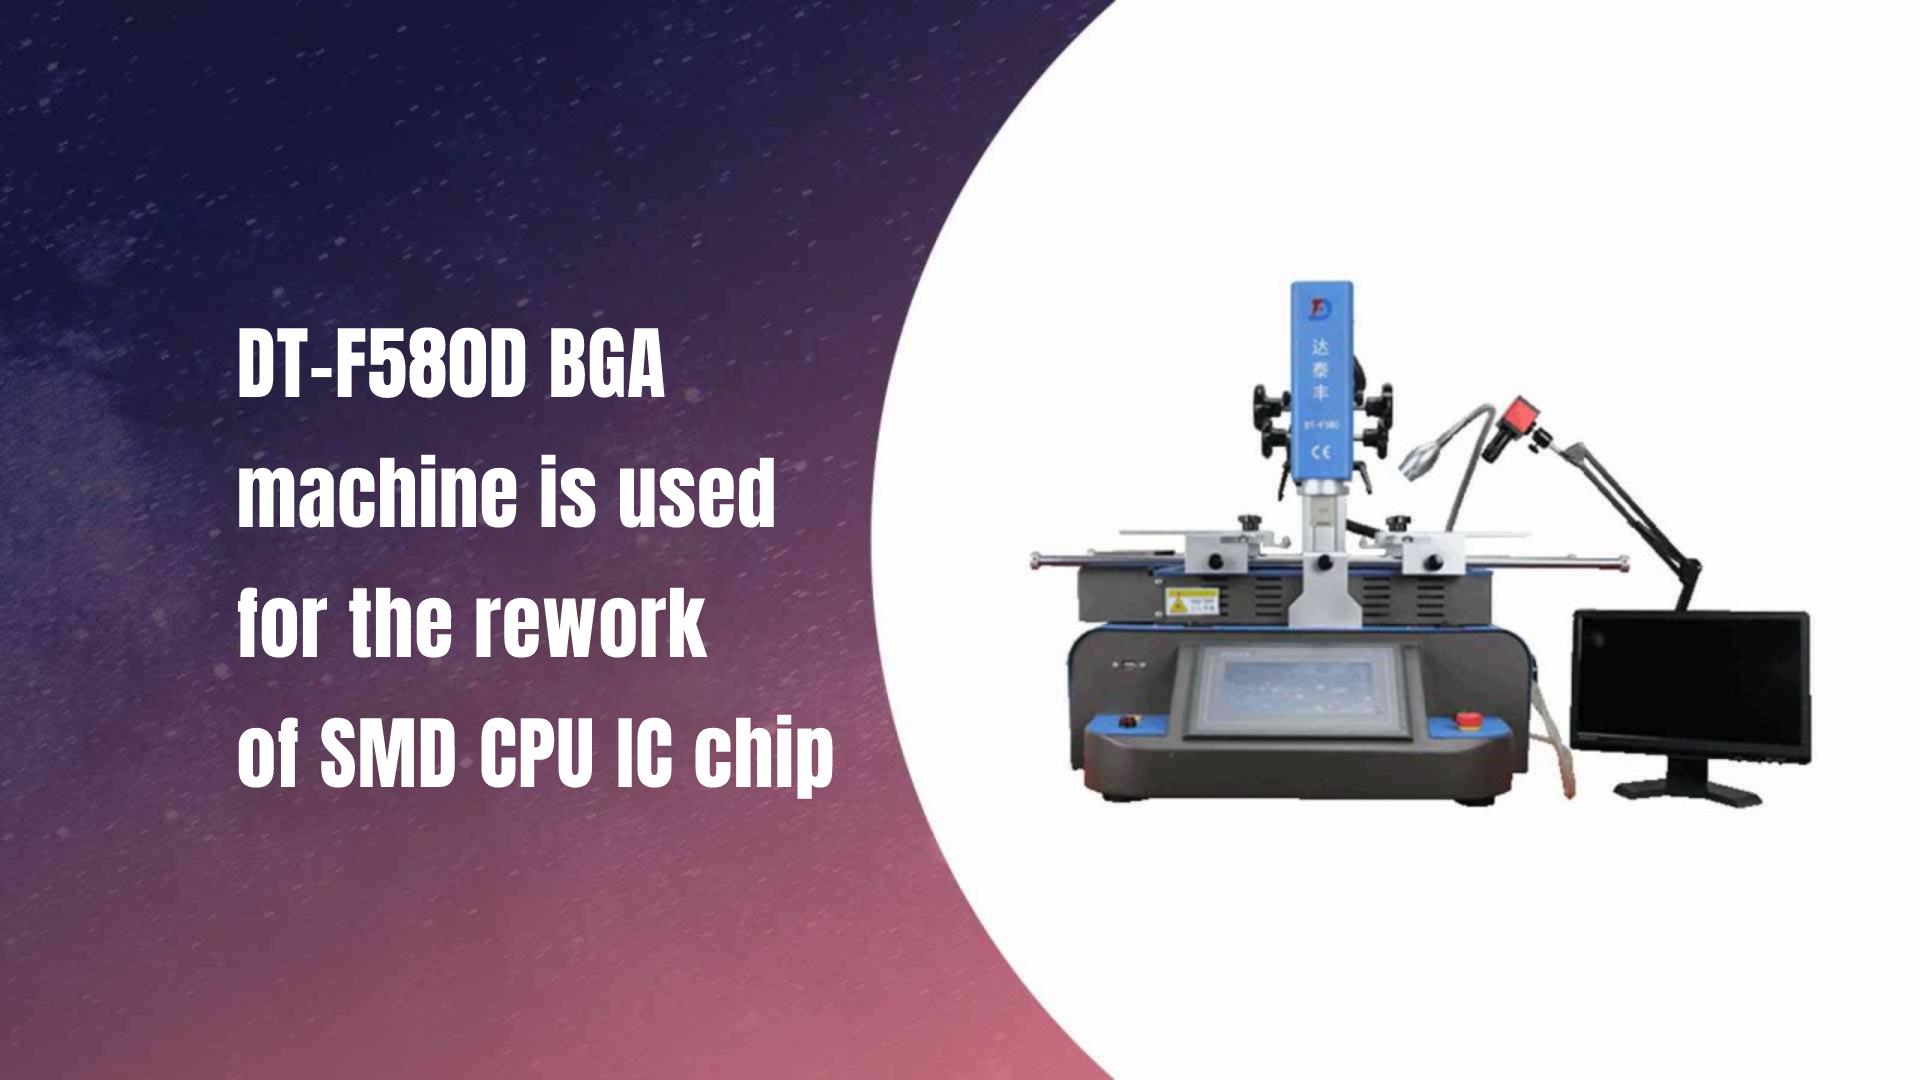 DT-F580D BGA machine is used for the rework of SMD、CPU、IC chip